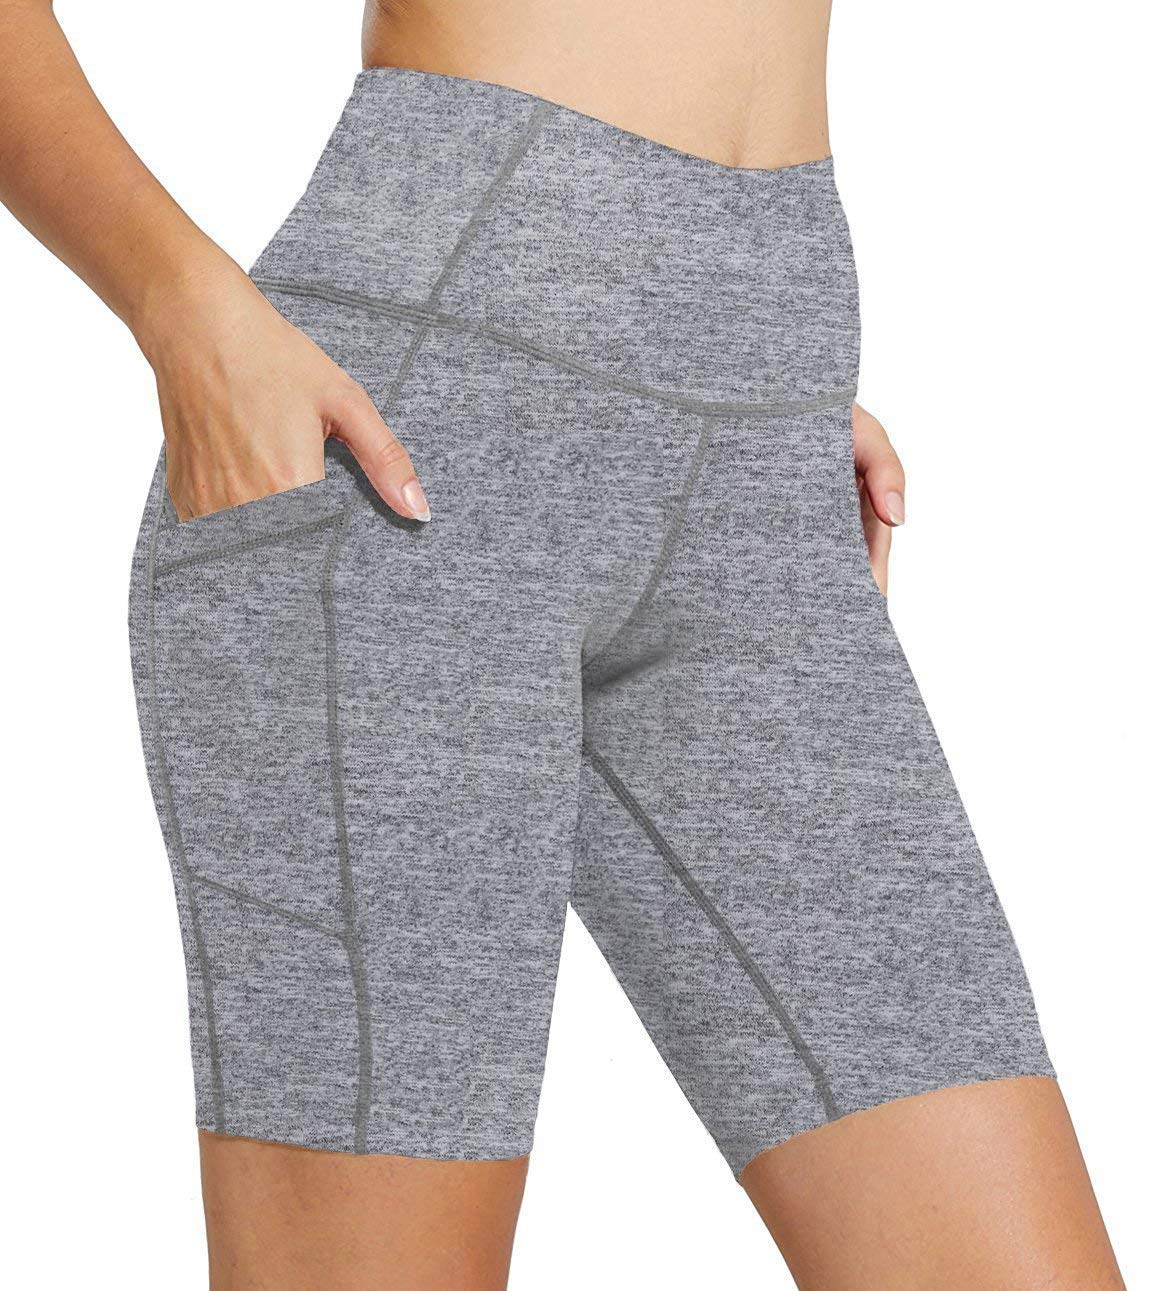 FIRM ABS Women Running Workout Tights Yoga Shorts Half Tights with Pockets XL